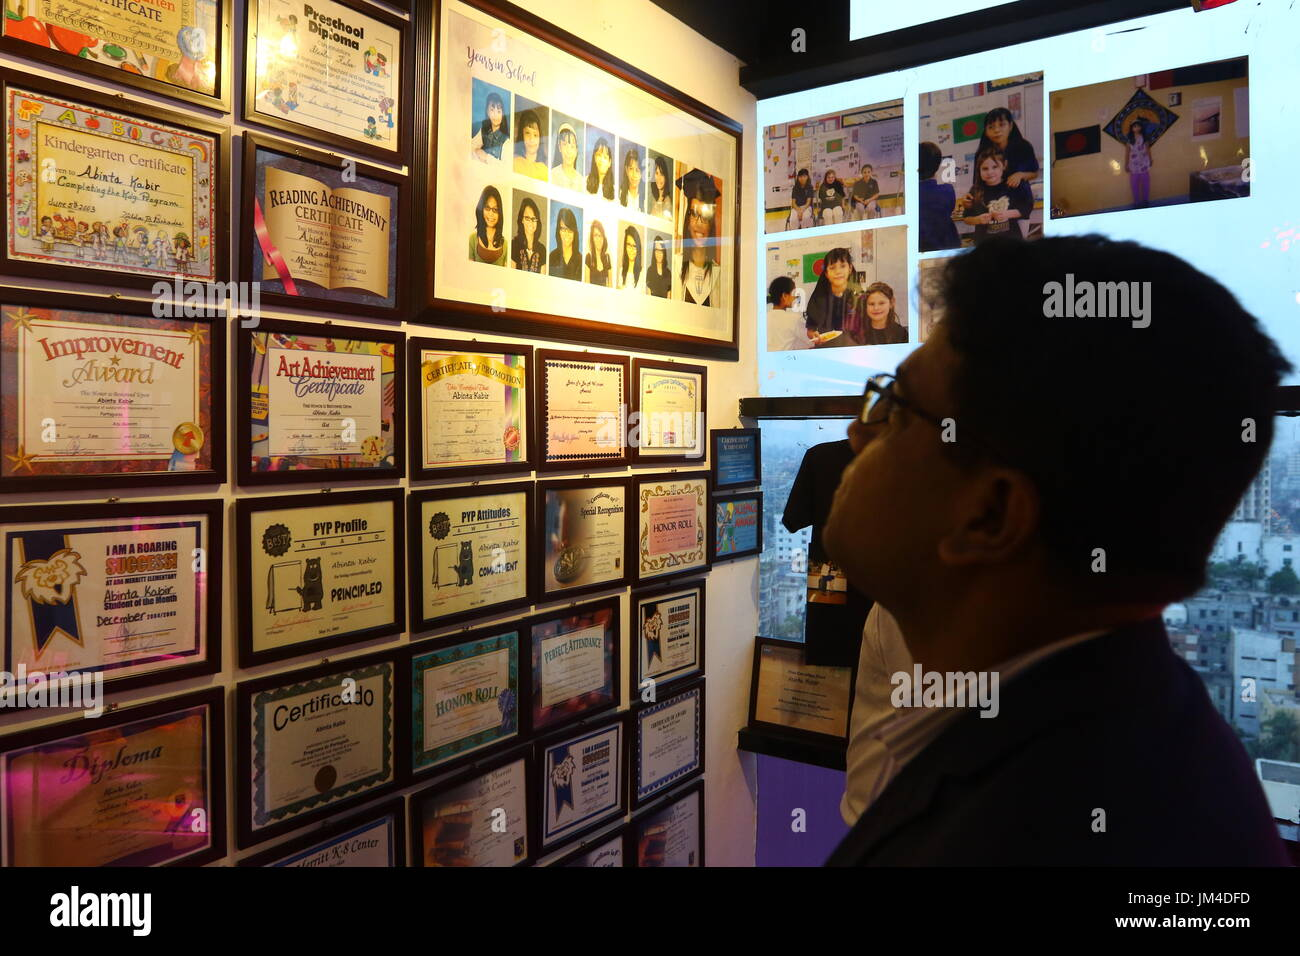 office space memorabilia. Visitors Look At The Memorabilia Of Abinta Kabir On Display In A Corner Office Space Foundation. Was Killed During Terro E